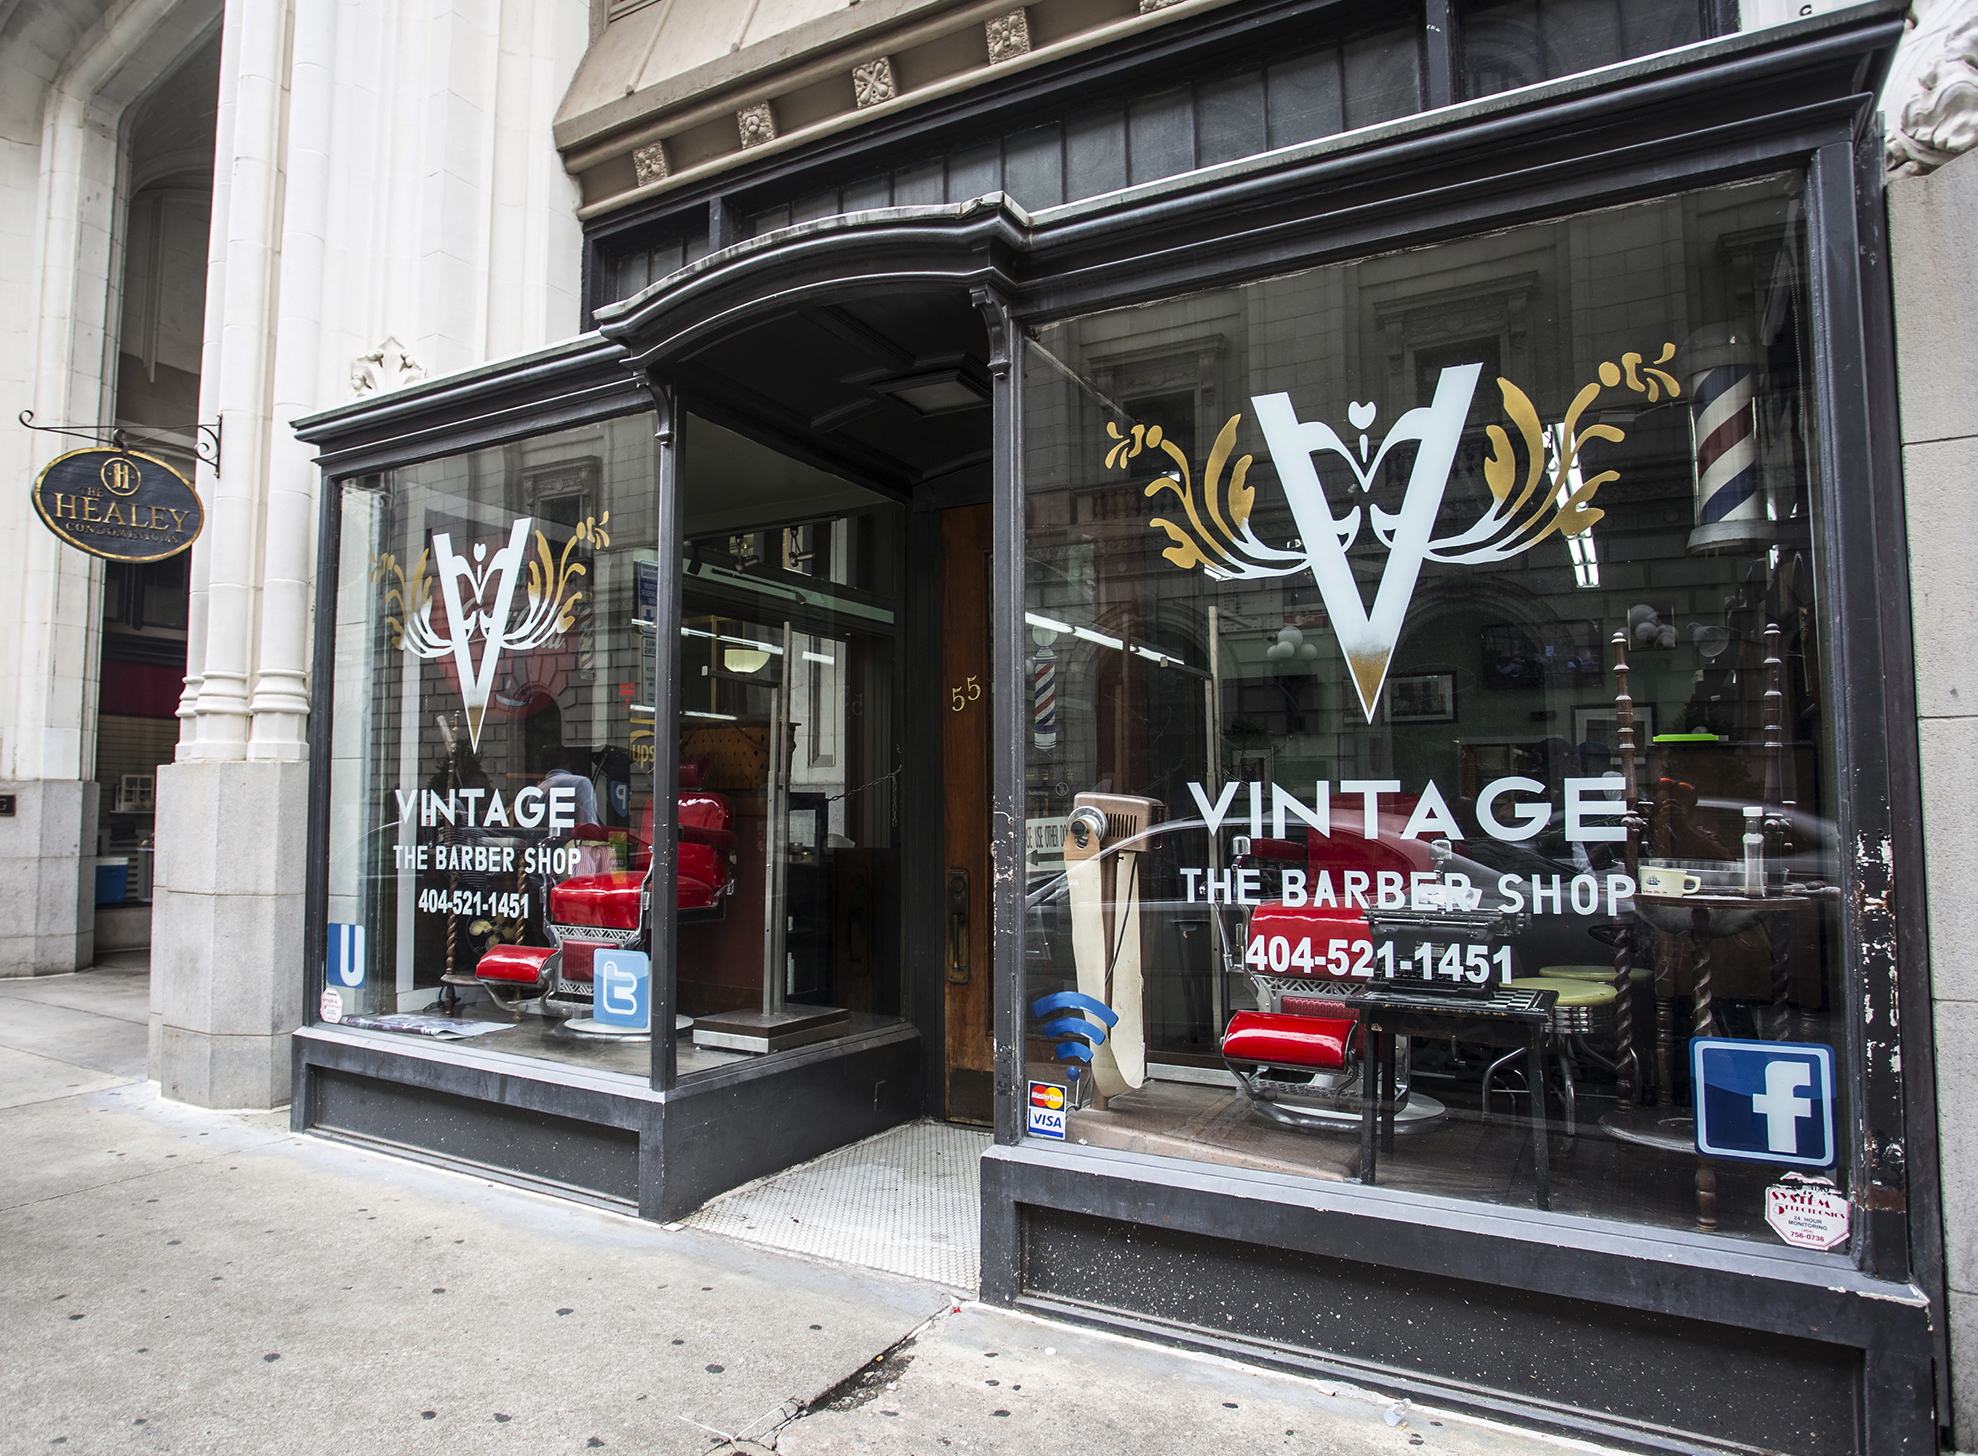 This photo shows the exterior of Vintage the Barber Shop on Tuesday, Aug. 9, 2016, in Atlanta. Swimmer Michael Phelps, of the United States, stopped by the shop before departing for the 2016 Summer Olympics in Rio de Janeiro, Brazil, and posted a selfie on his Instagram.